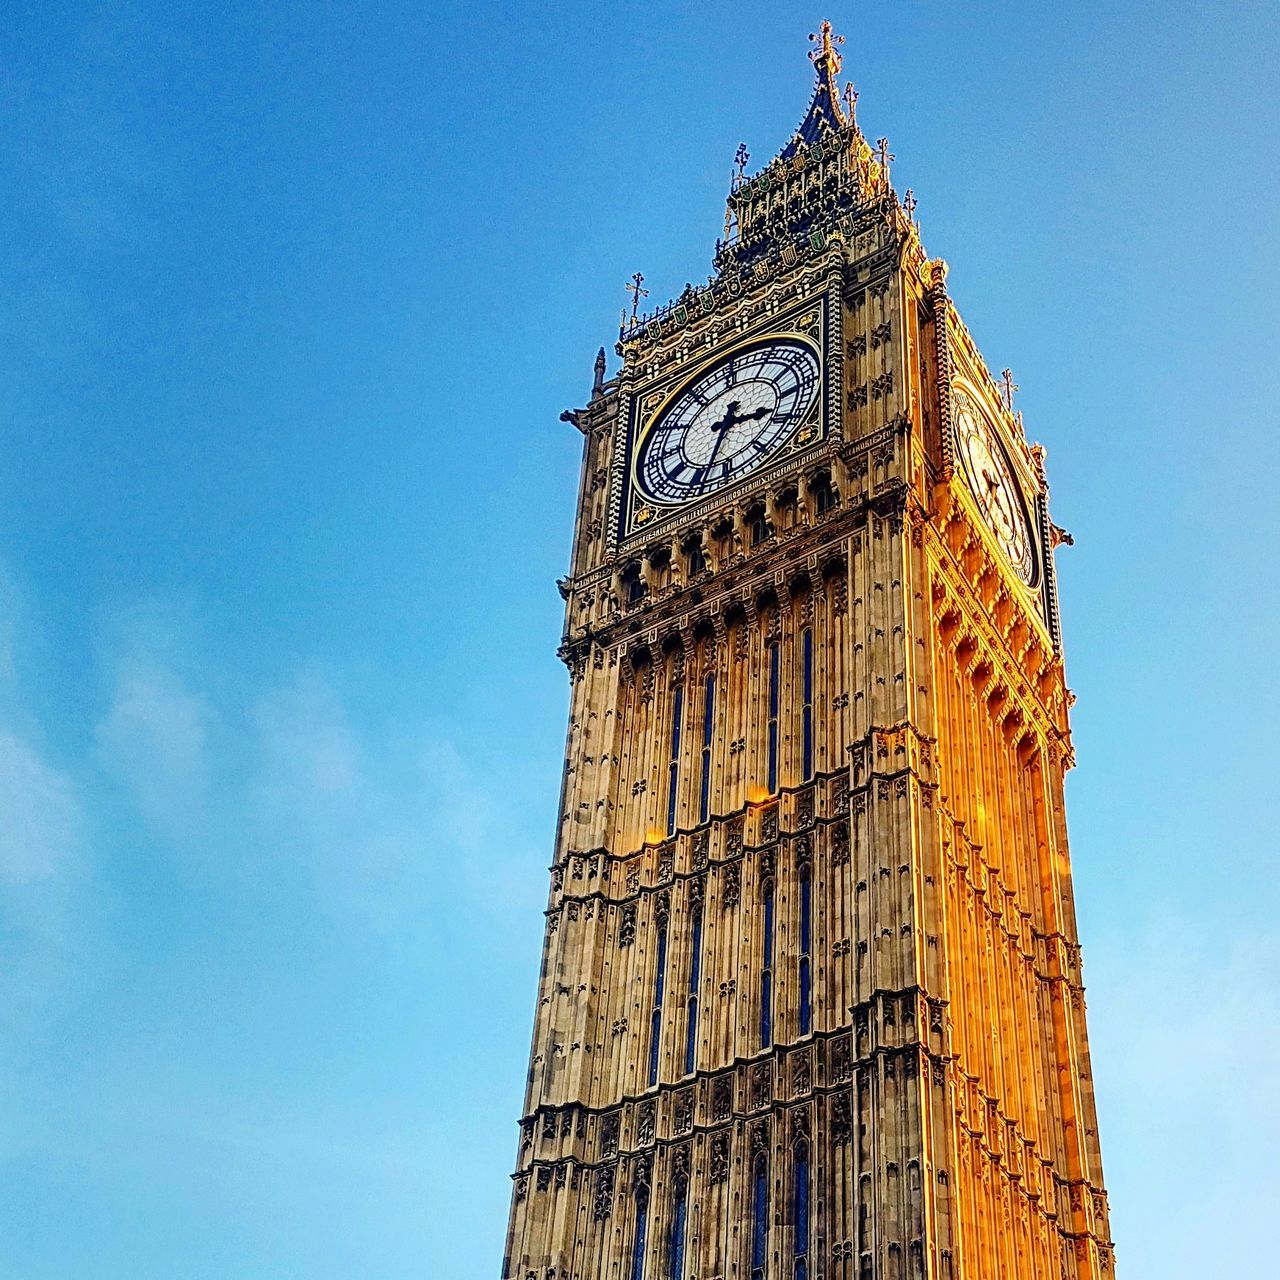 Blue Sky City Tower Architecture Clock Tower Low Angle View Travel Destinations No People History Built Structure Outdoors Day Cultures Clock Face Clock London Westminster Big Ben Travel